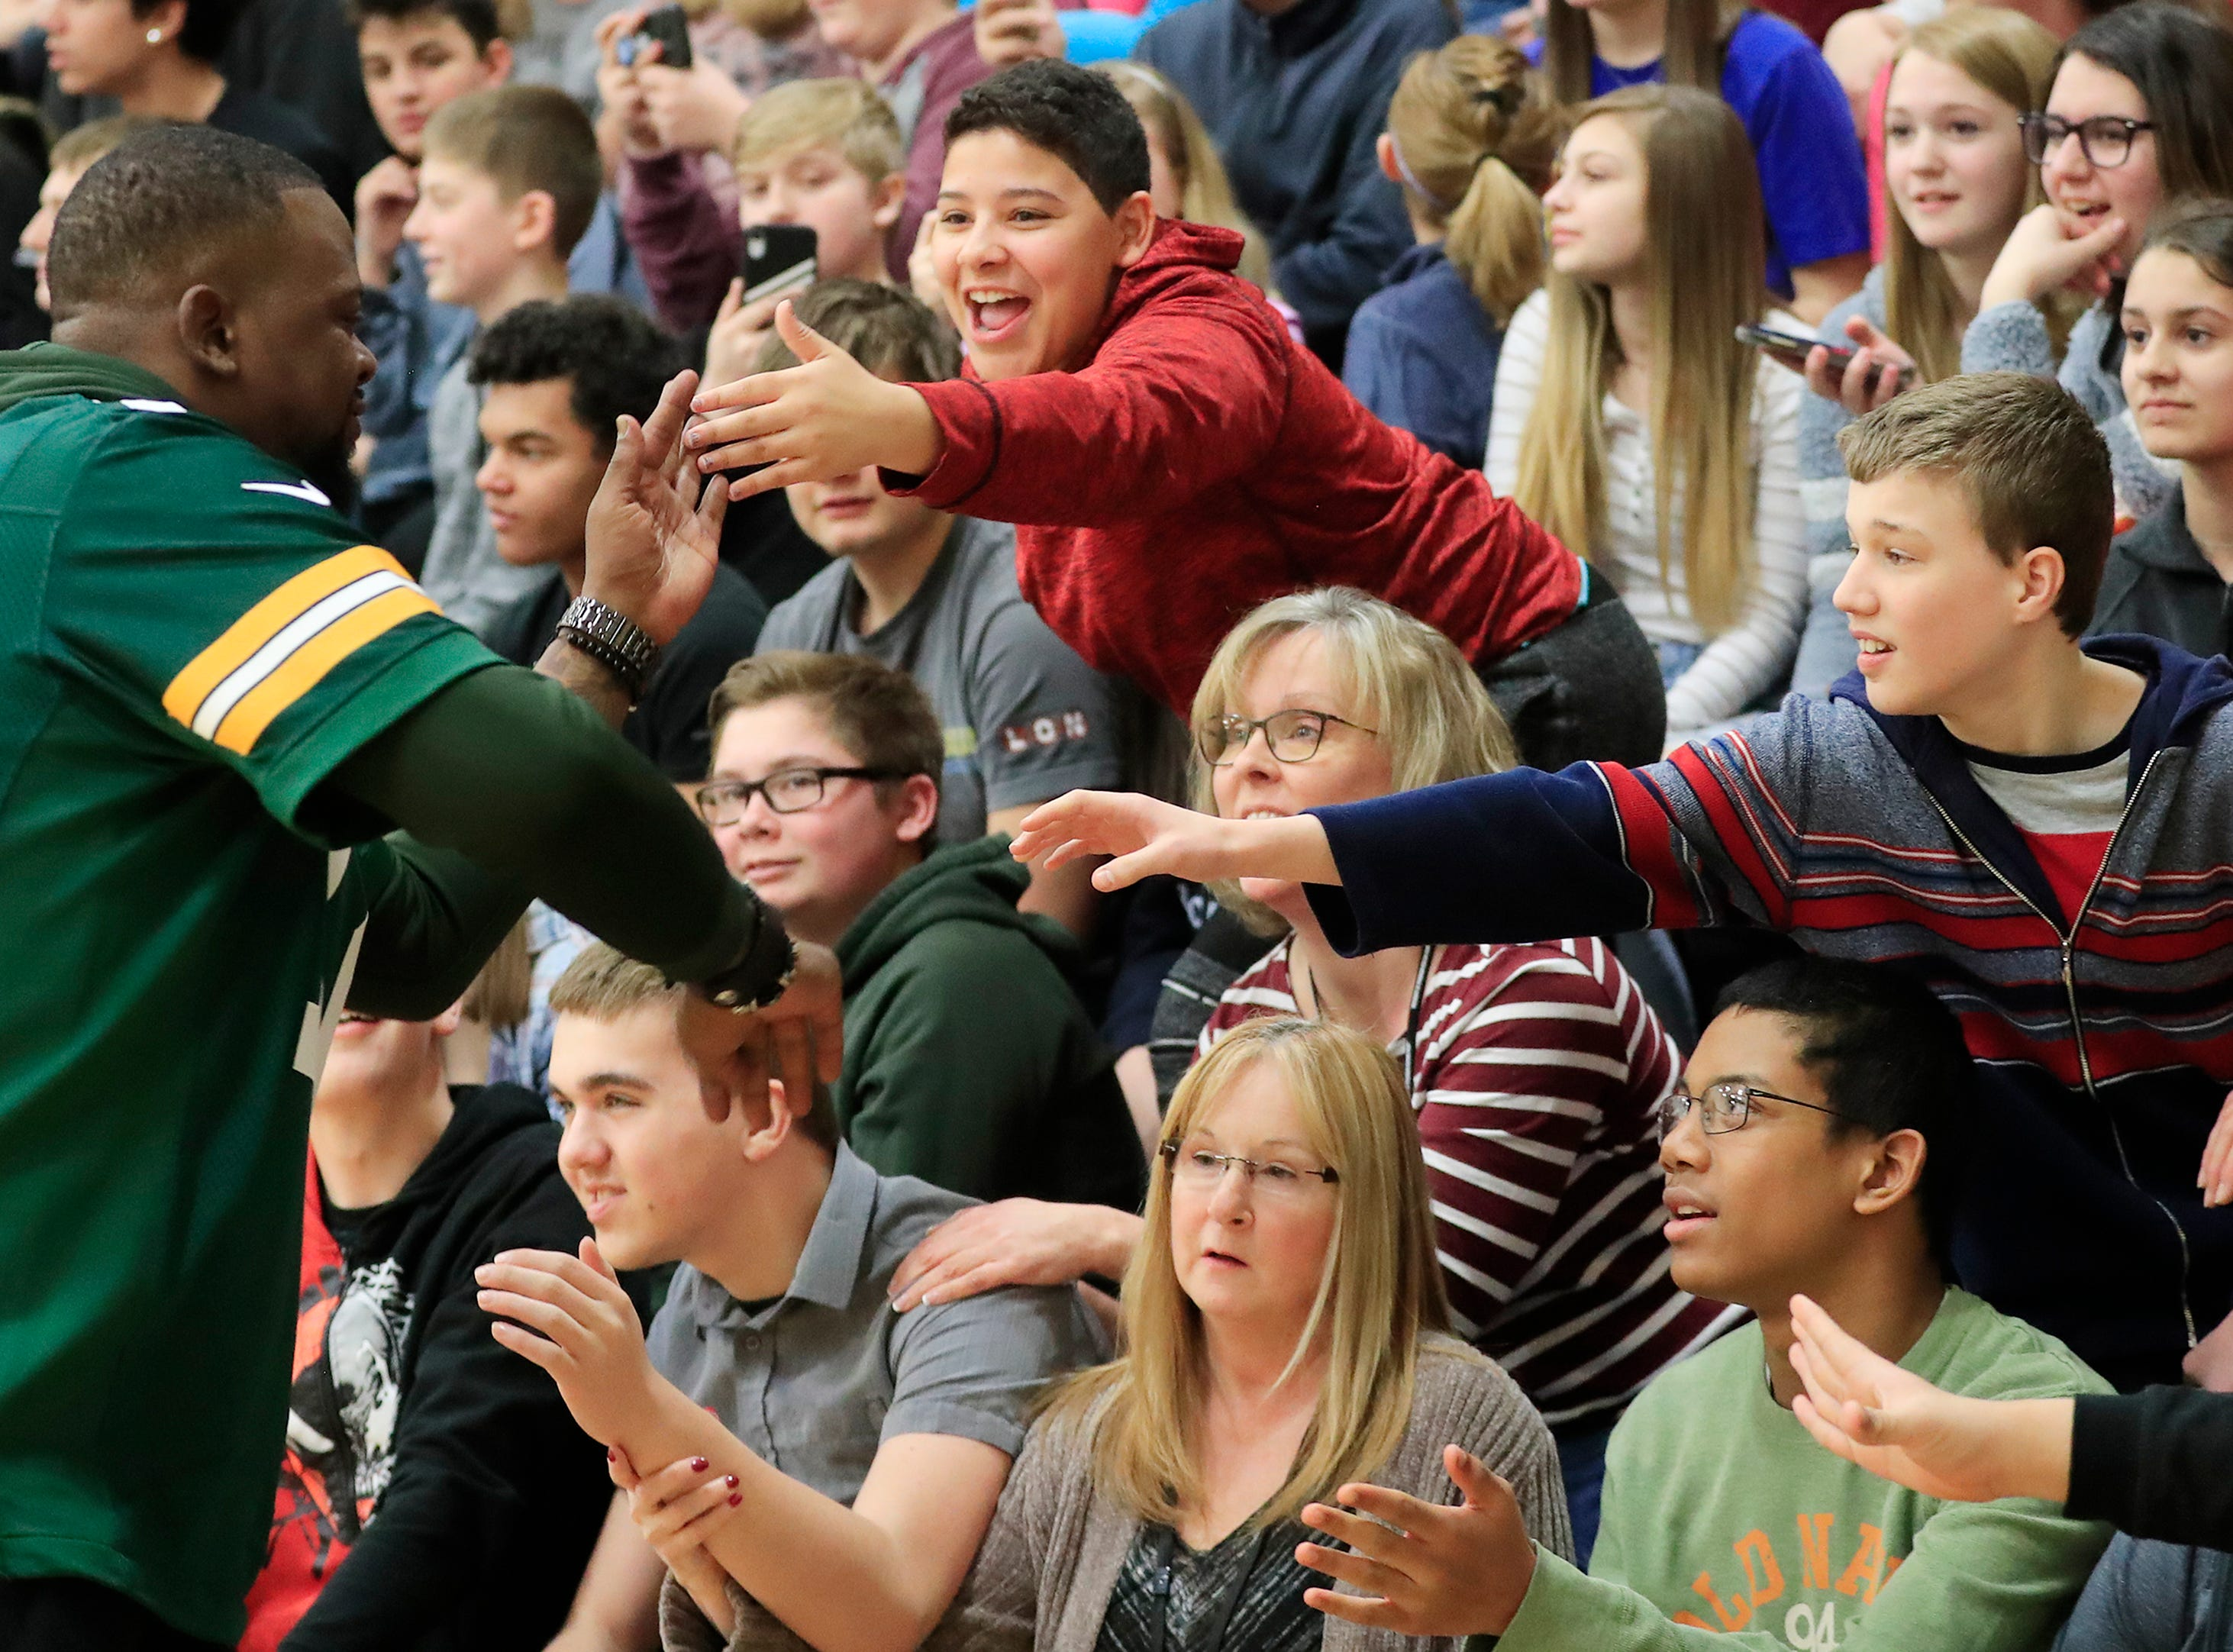 Former Green Bay Packers player Earl Dotson high fives kids during a stop on the Packers Tailgate Tour at Ben Franklin Junior High School on Tuesday, April 9, 2019 in Stevens Point, Wis.